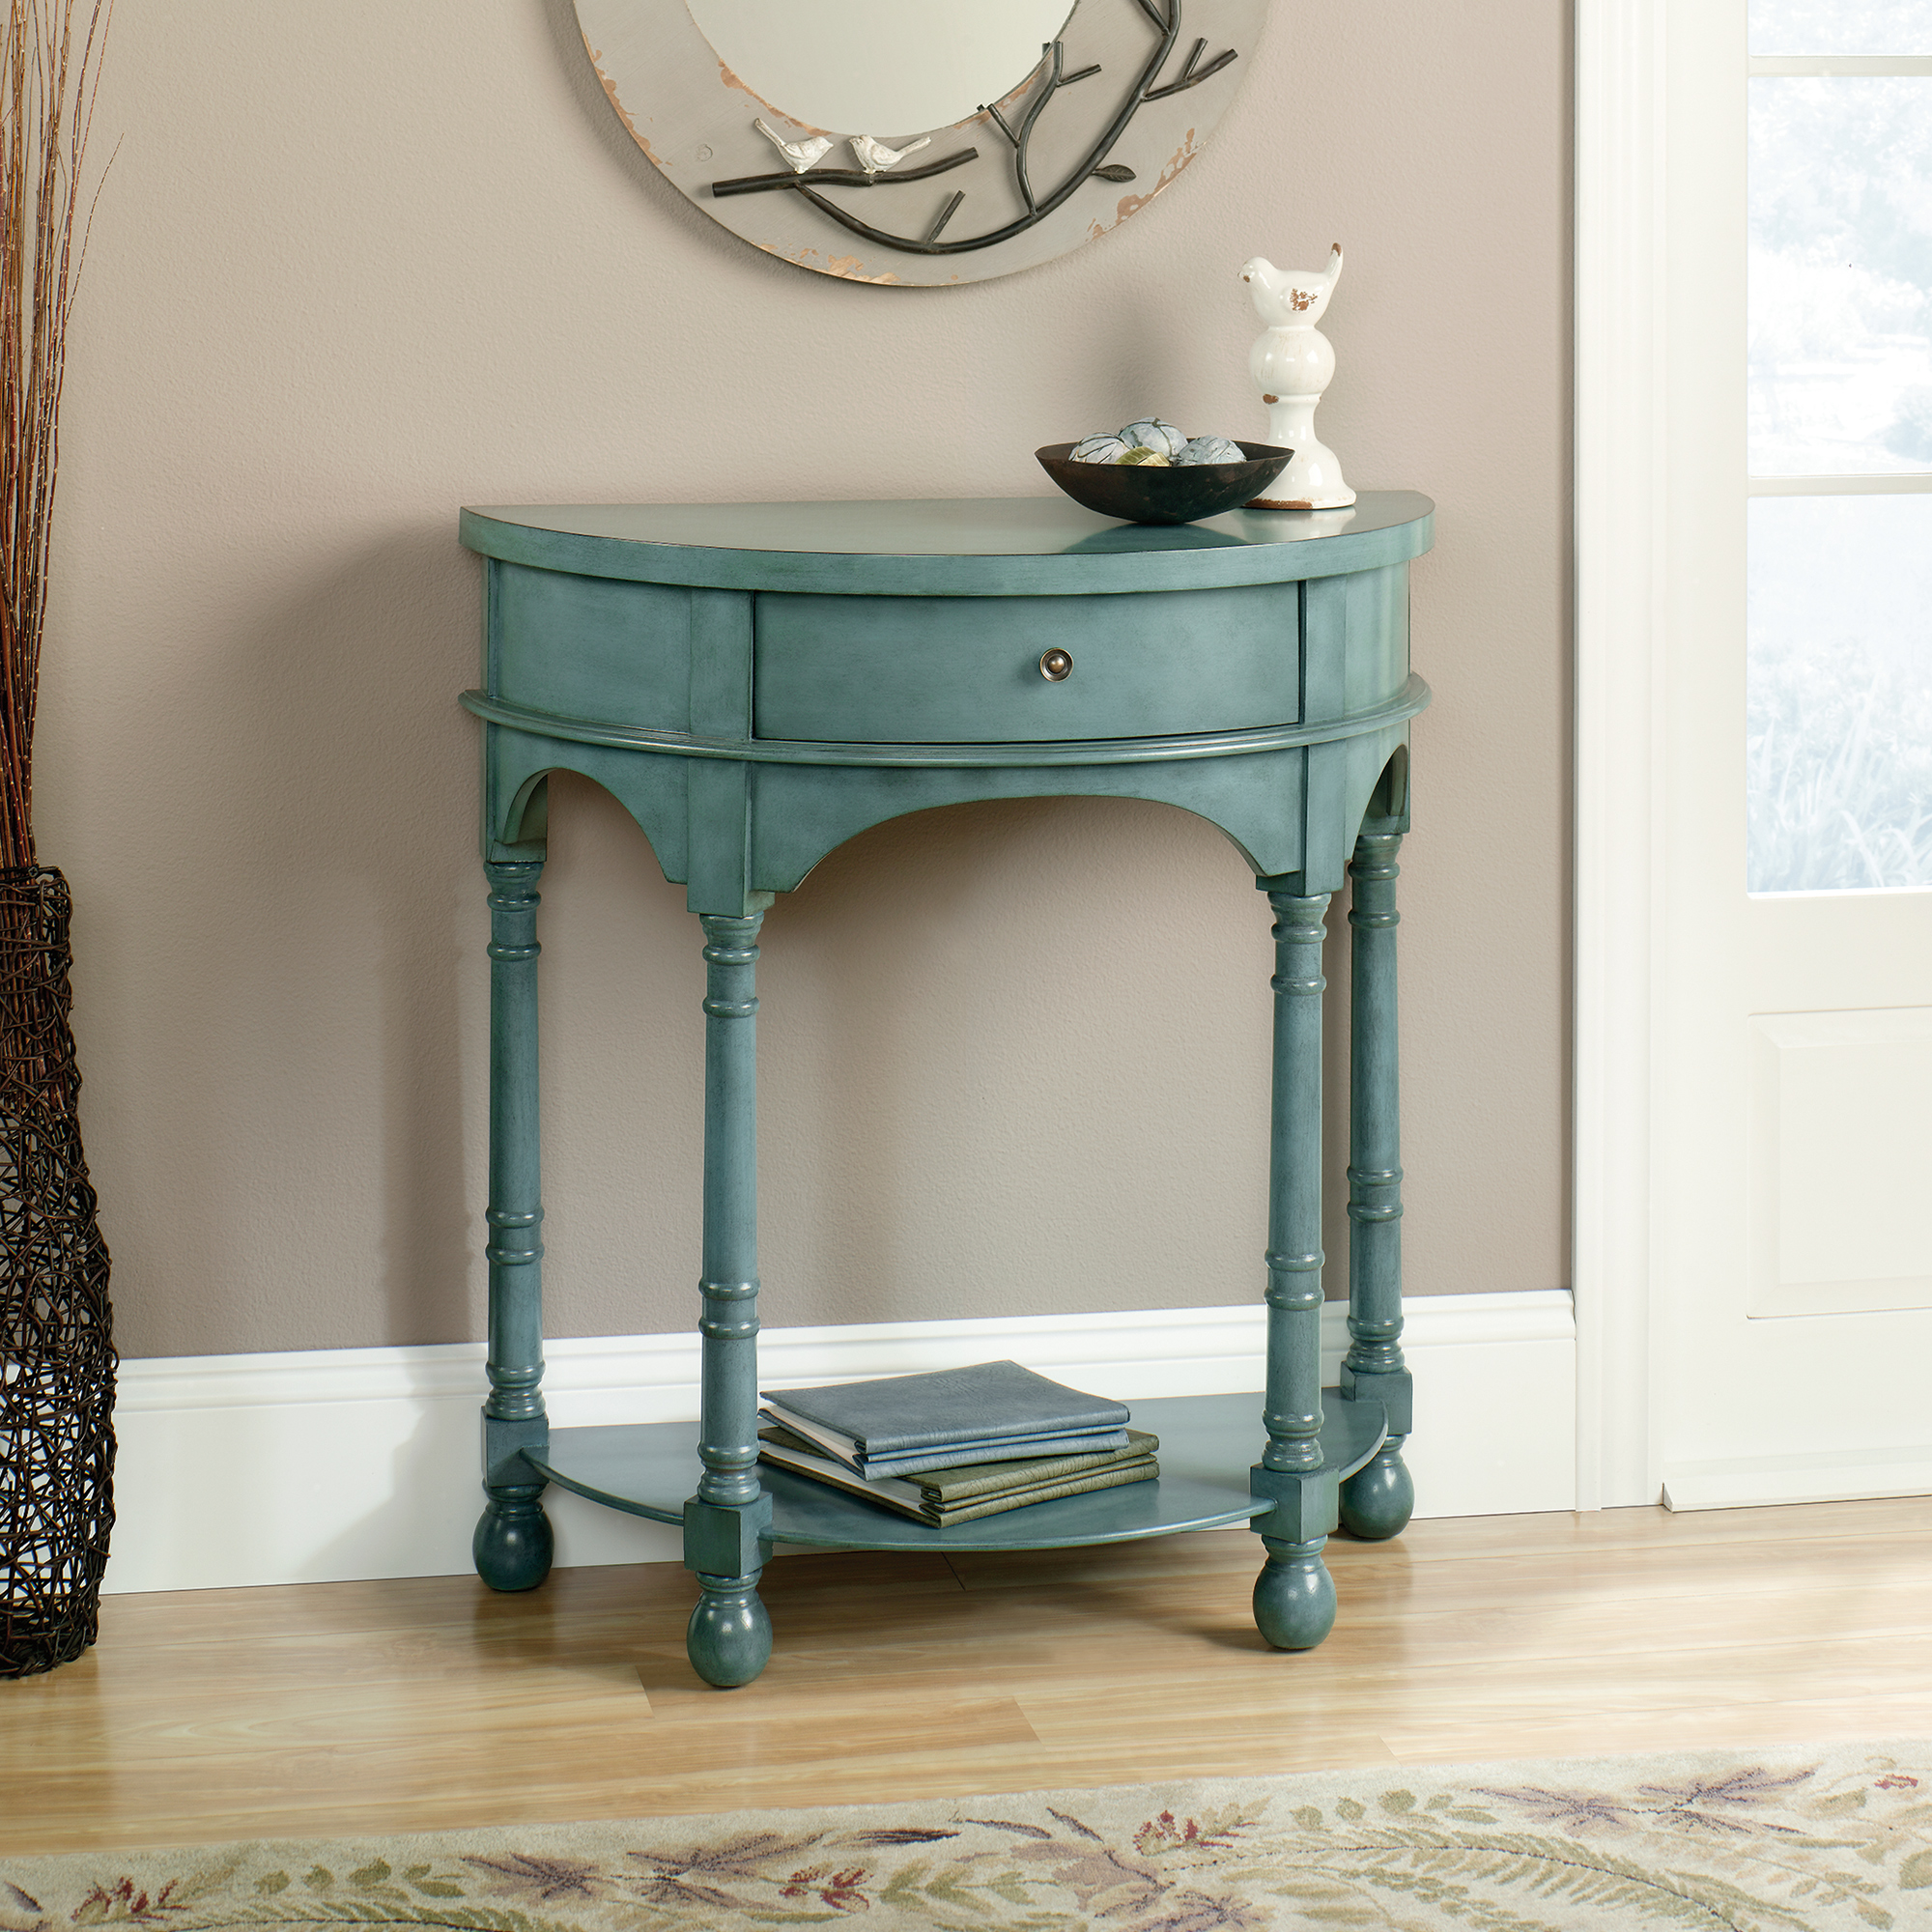 harbor view accent table sauder clearance tables pedestal end ashley furniture coffee small cream solid wood round aqua blue jcpenney floor lamps target dresser drawers broadmoore